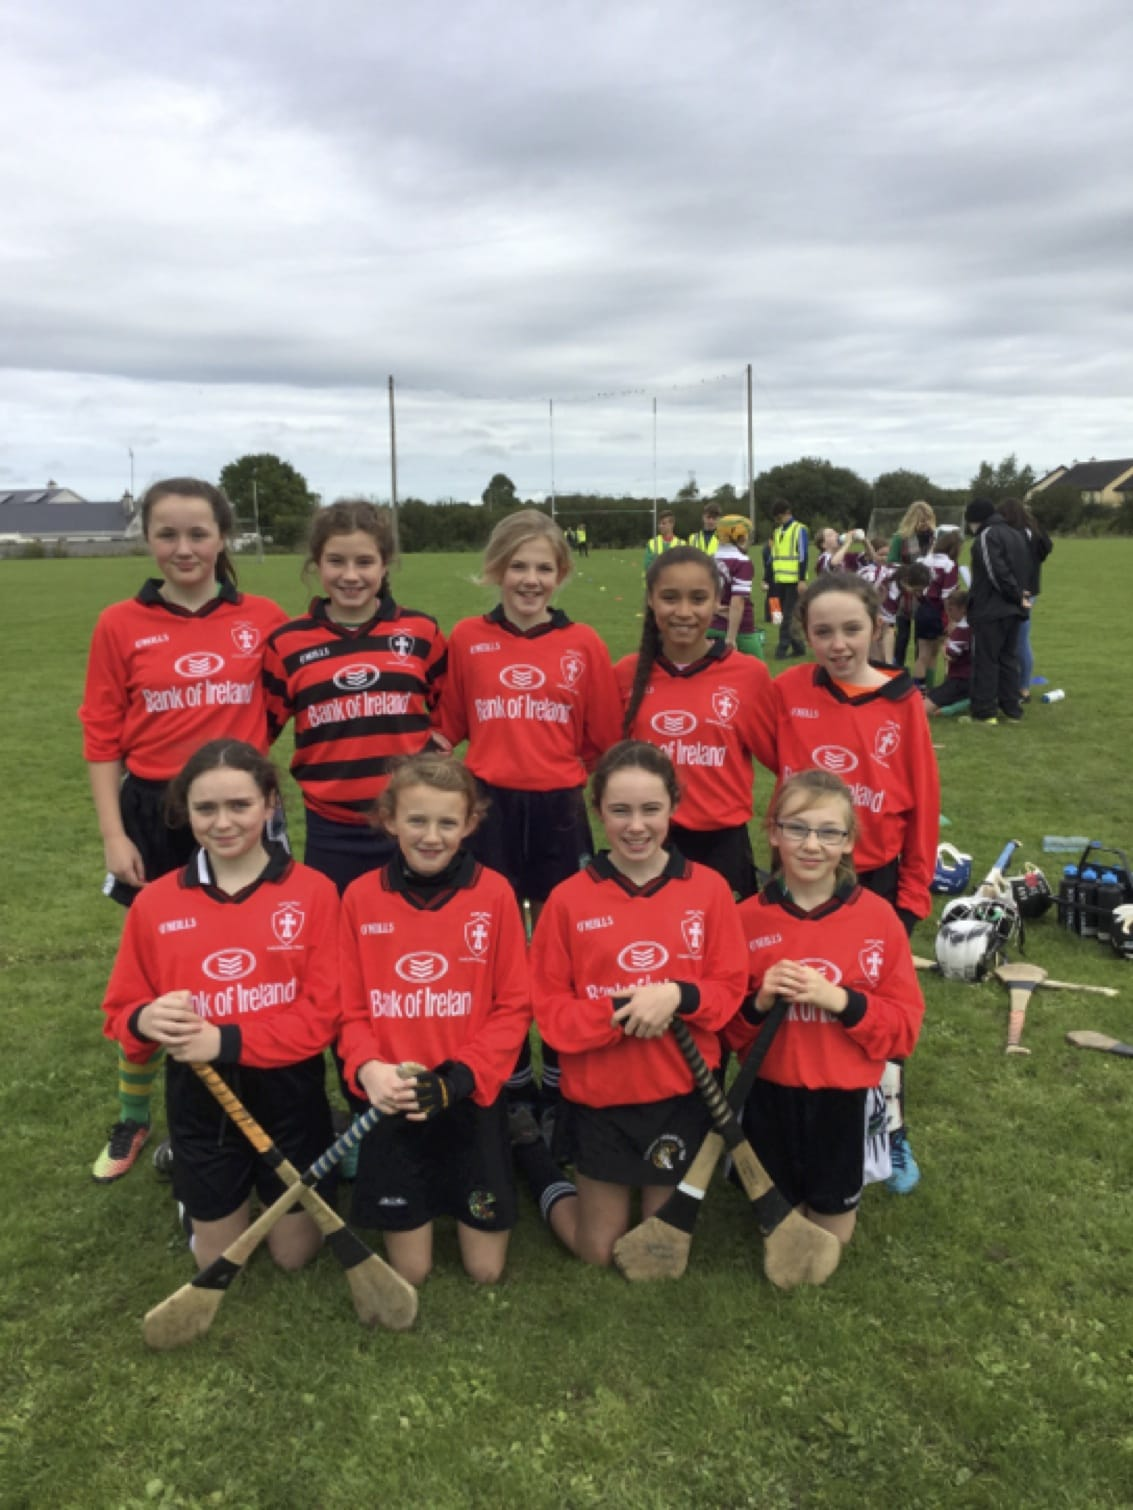 26-27 Sept 2016: Scoil Iosaf - Champions of the Primary Camogie Blitz 2016